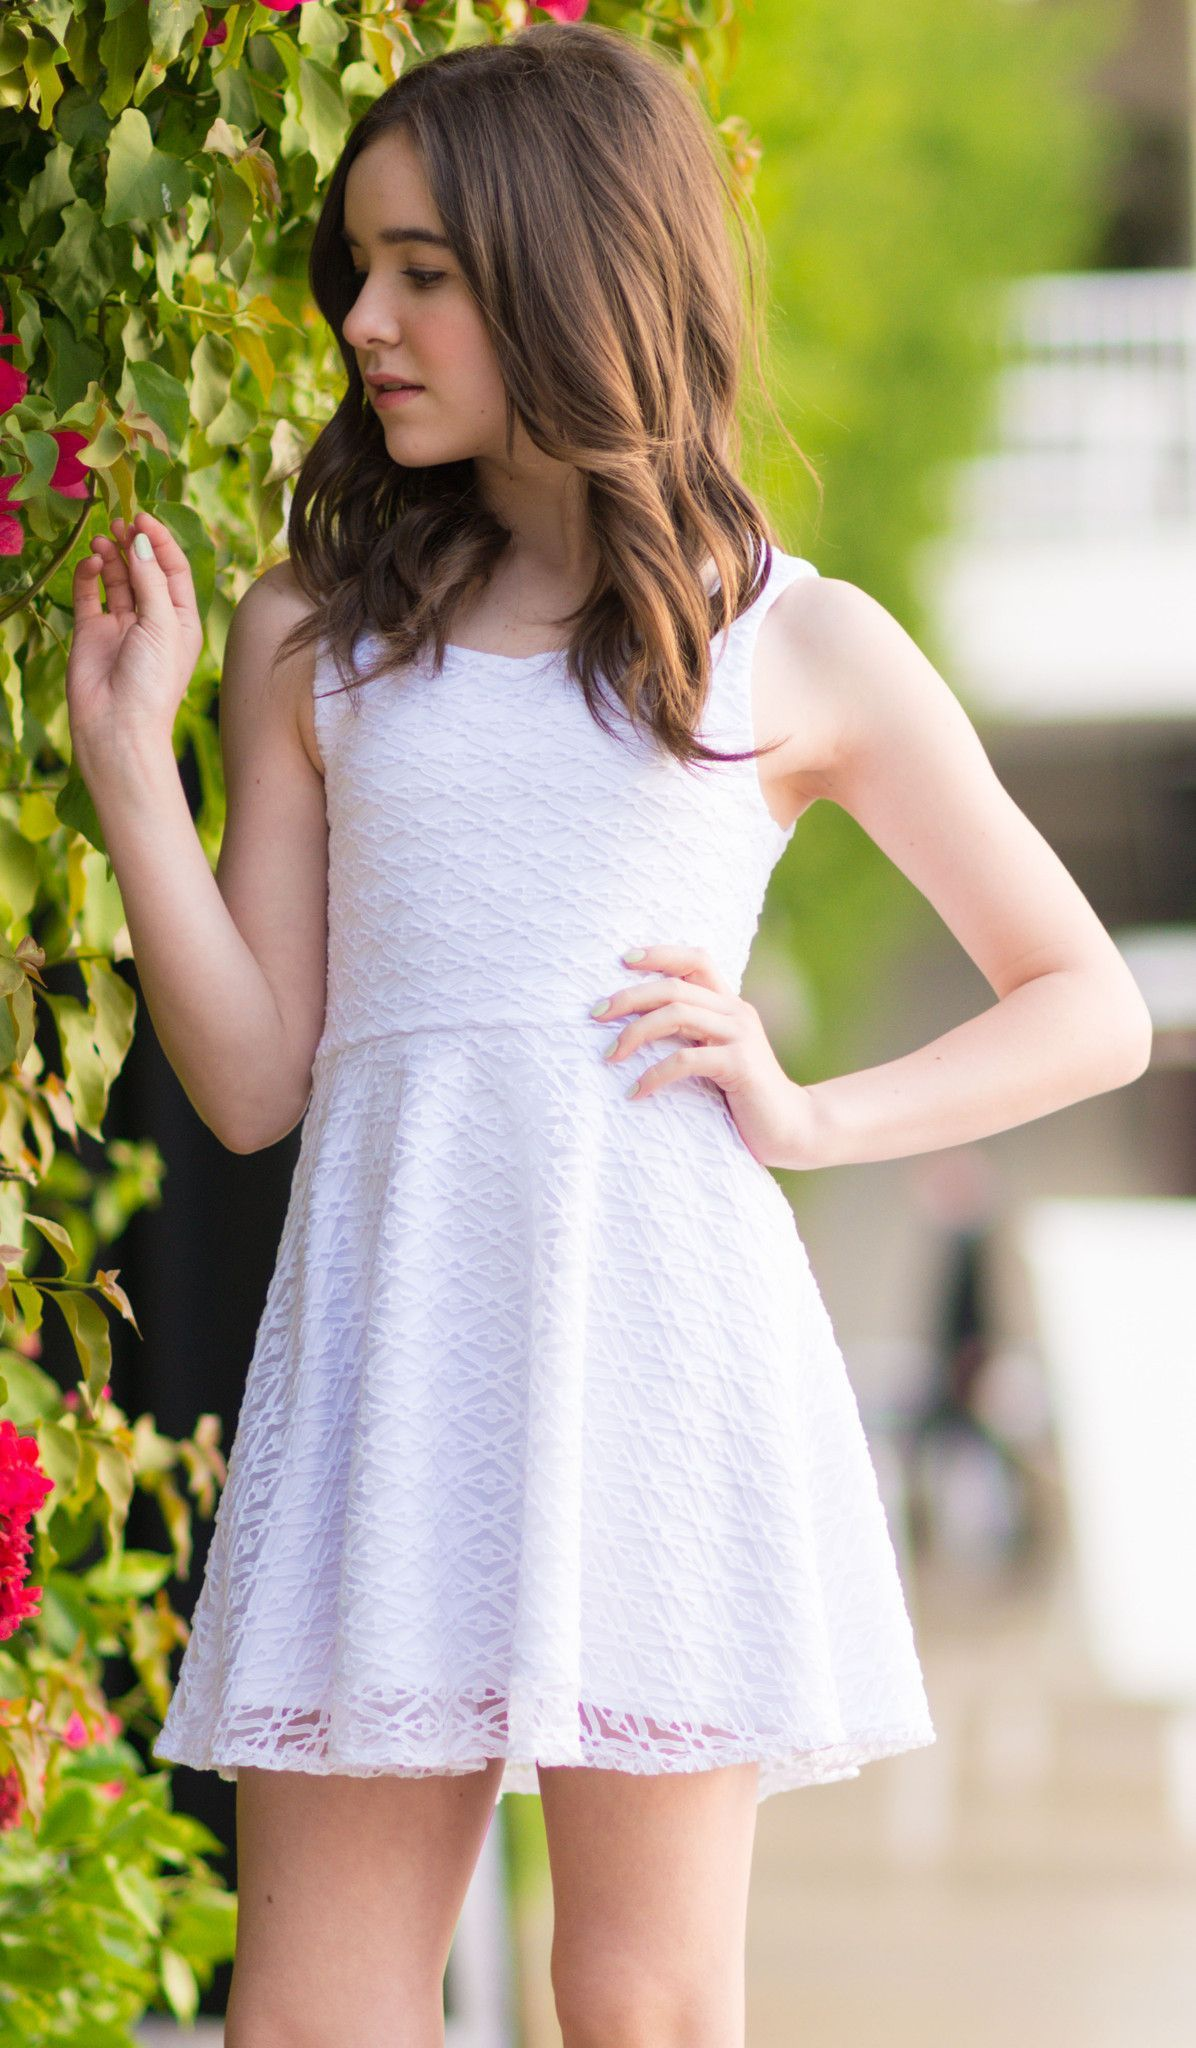 Free Dress Pictures